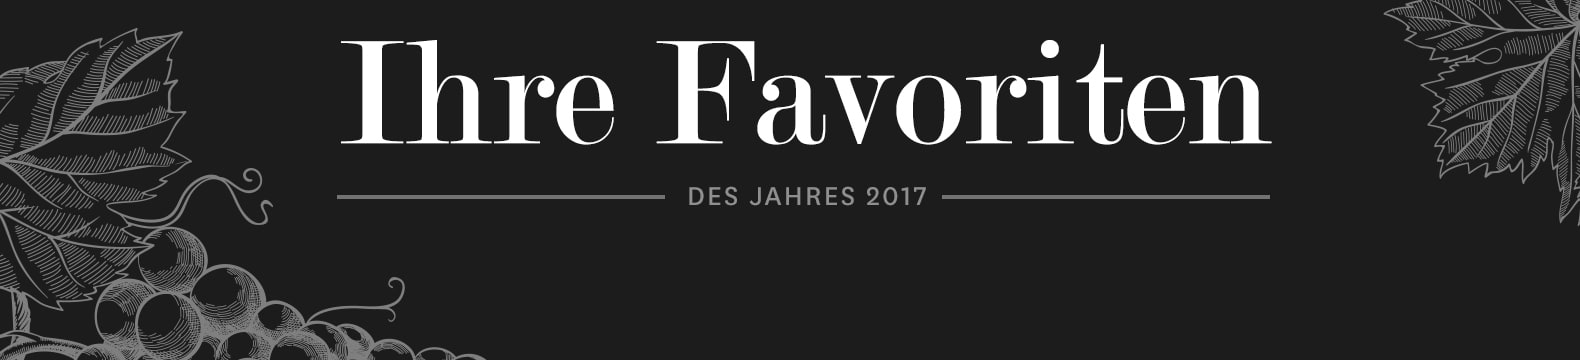 Ihre Favoriten 2017